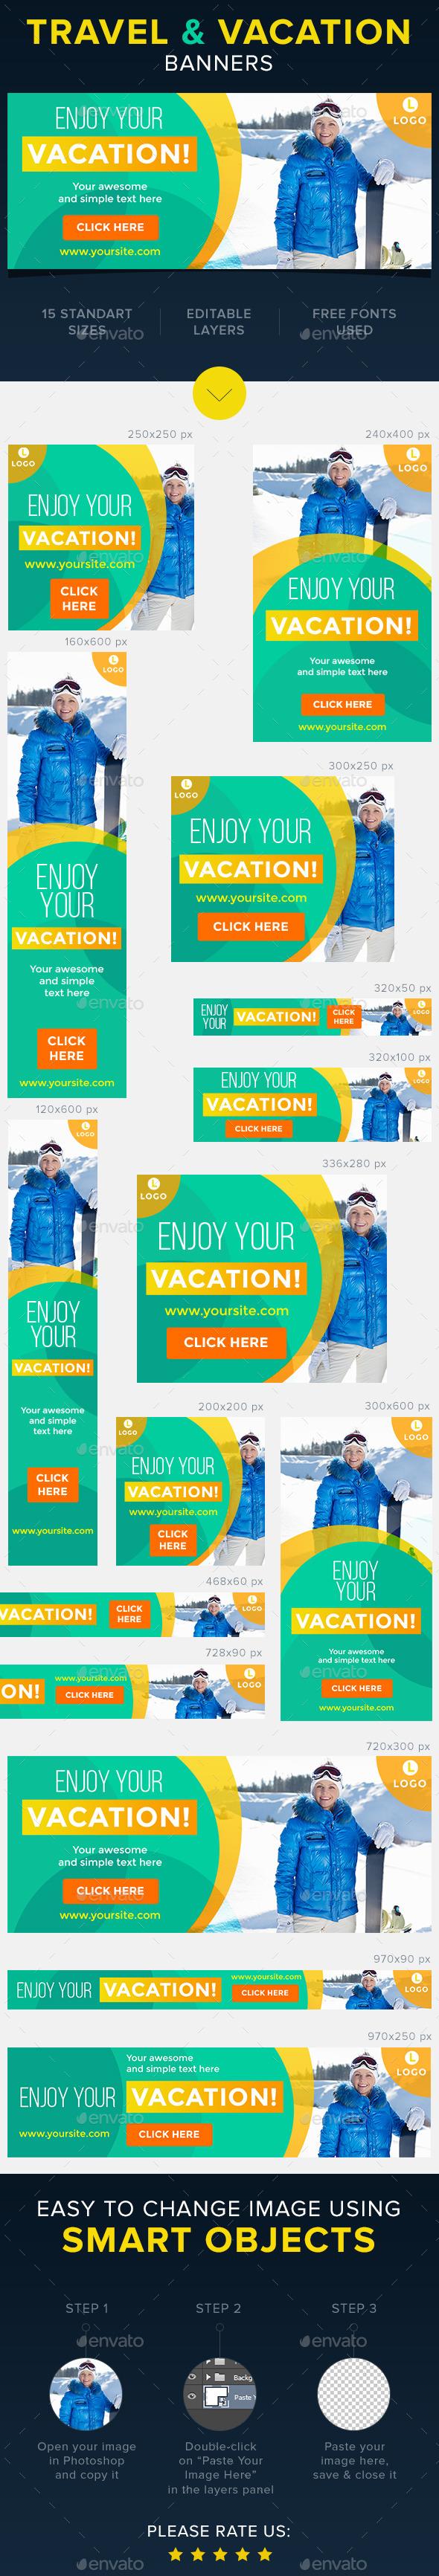 Travel & Vacation Banners - Banners & Ads Web Elements